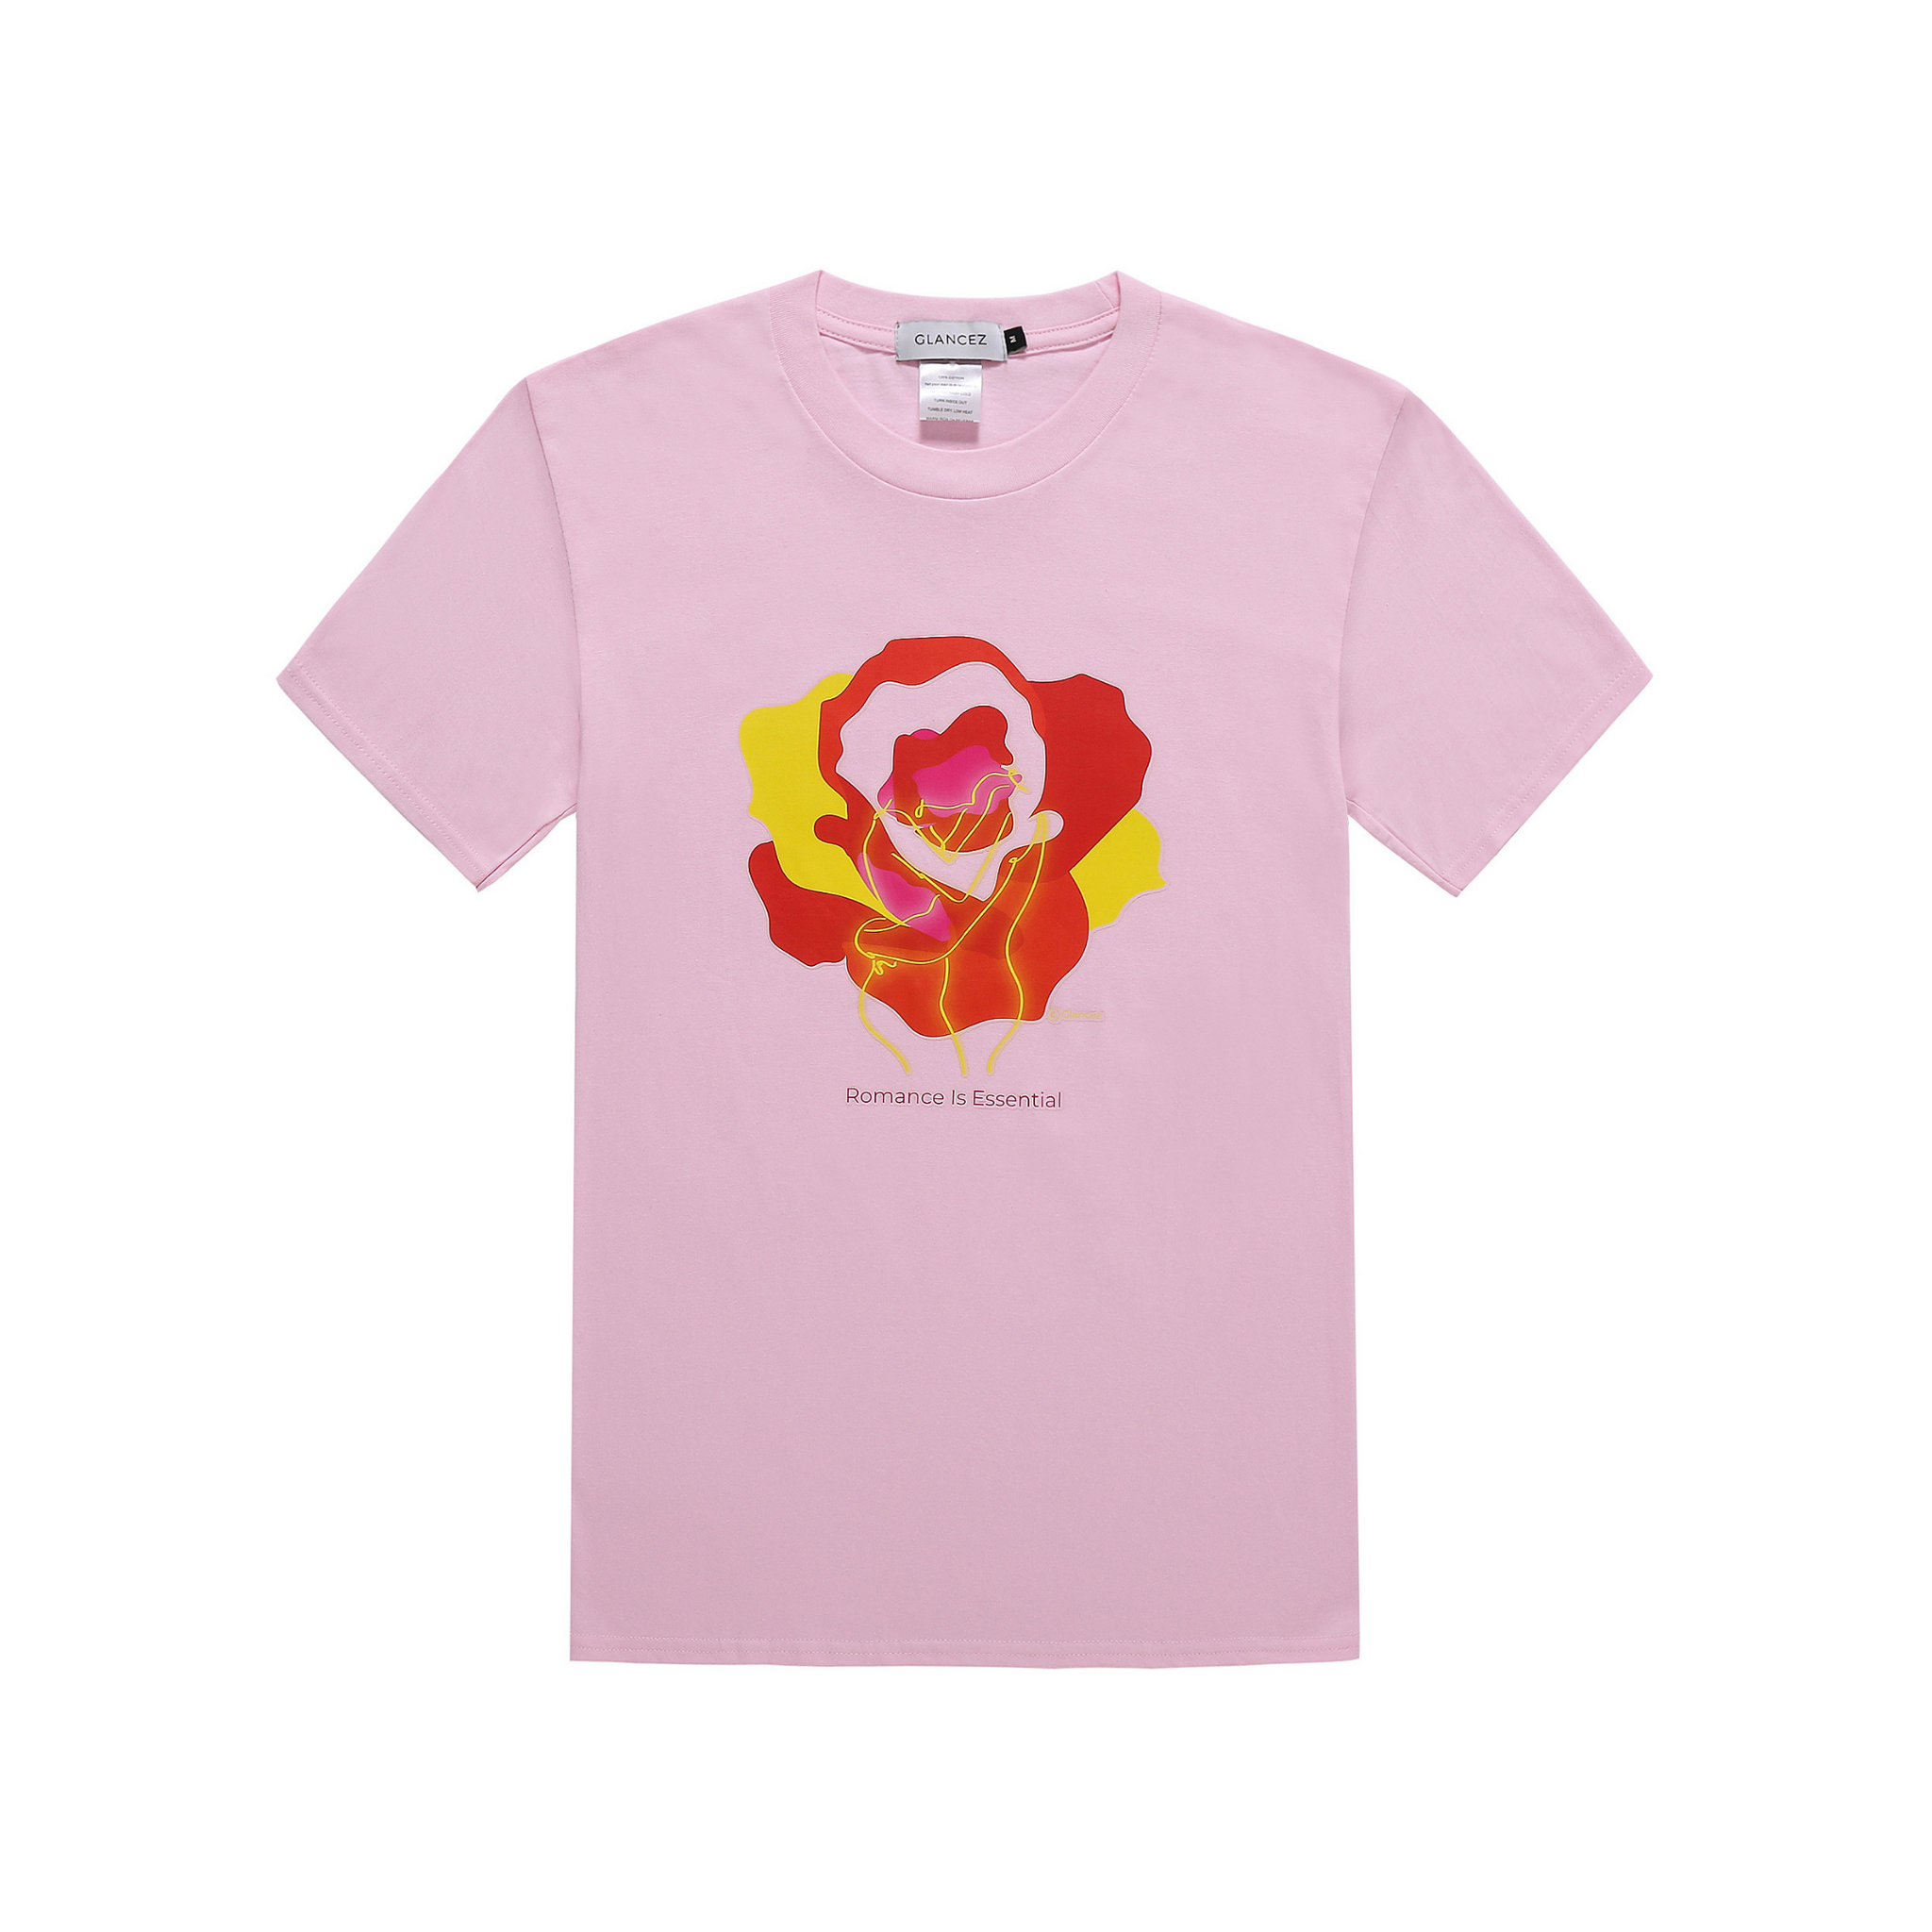 Original Romance T-shirt In Pink